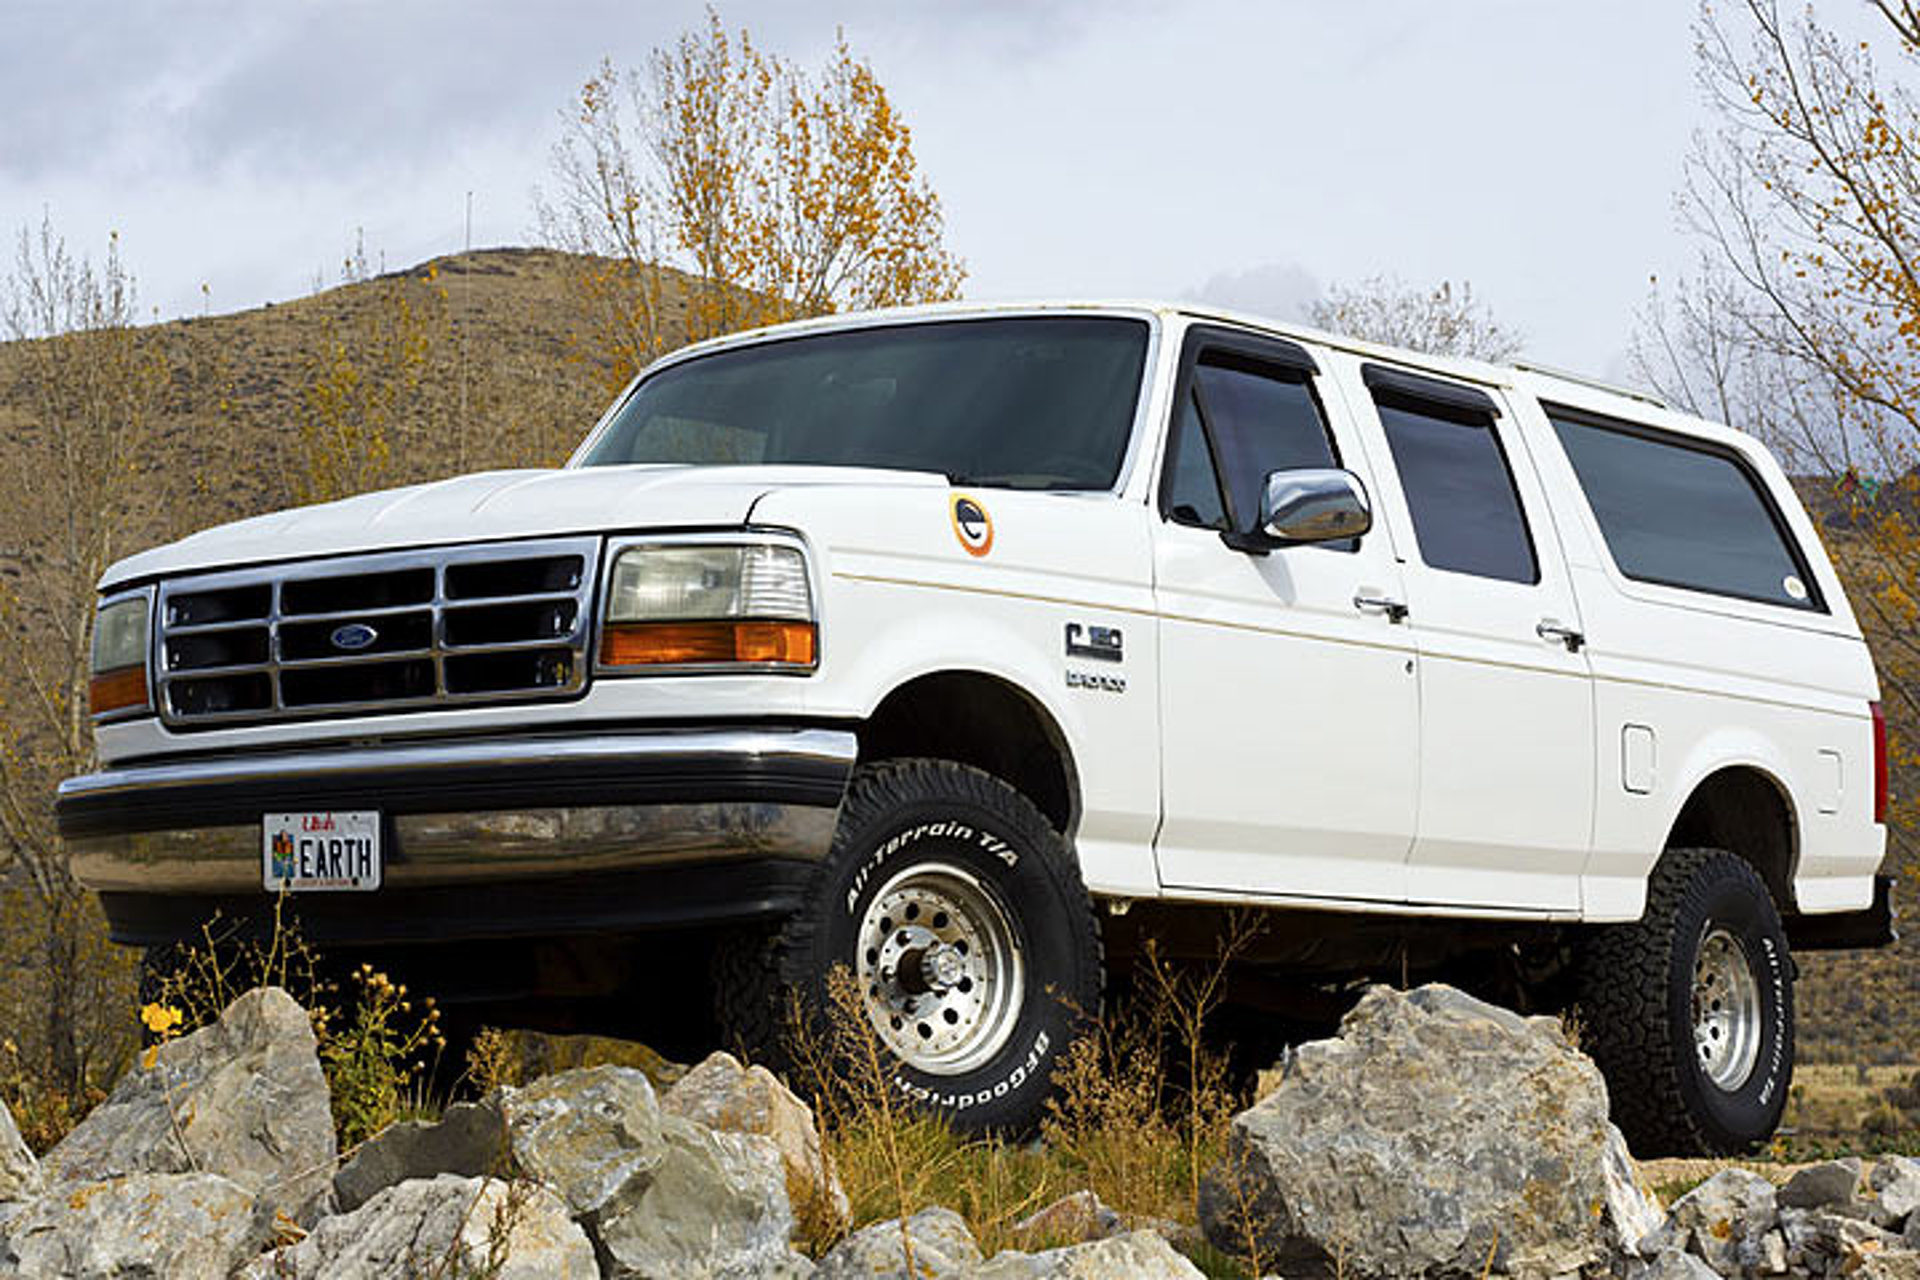 Diesel ford bronco for sale - This Is The 4 Door Ford Bronco You Didn T Know Existed